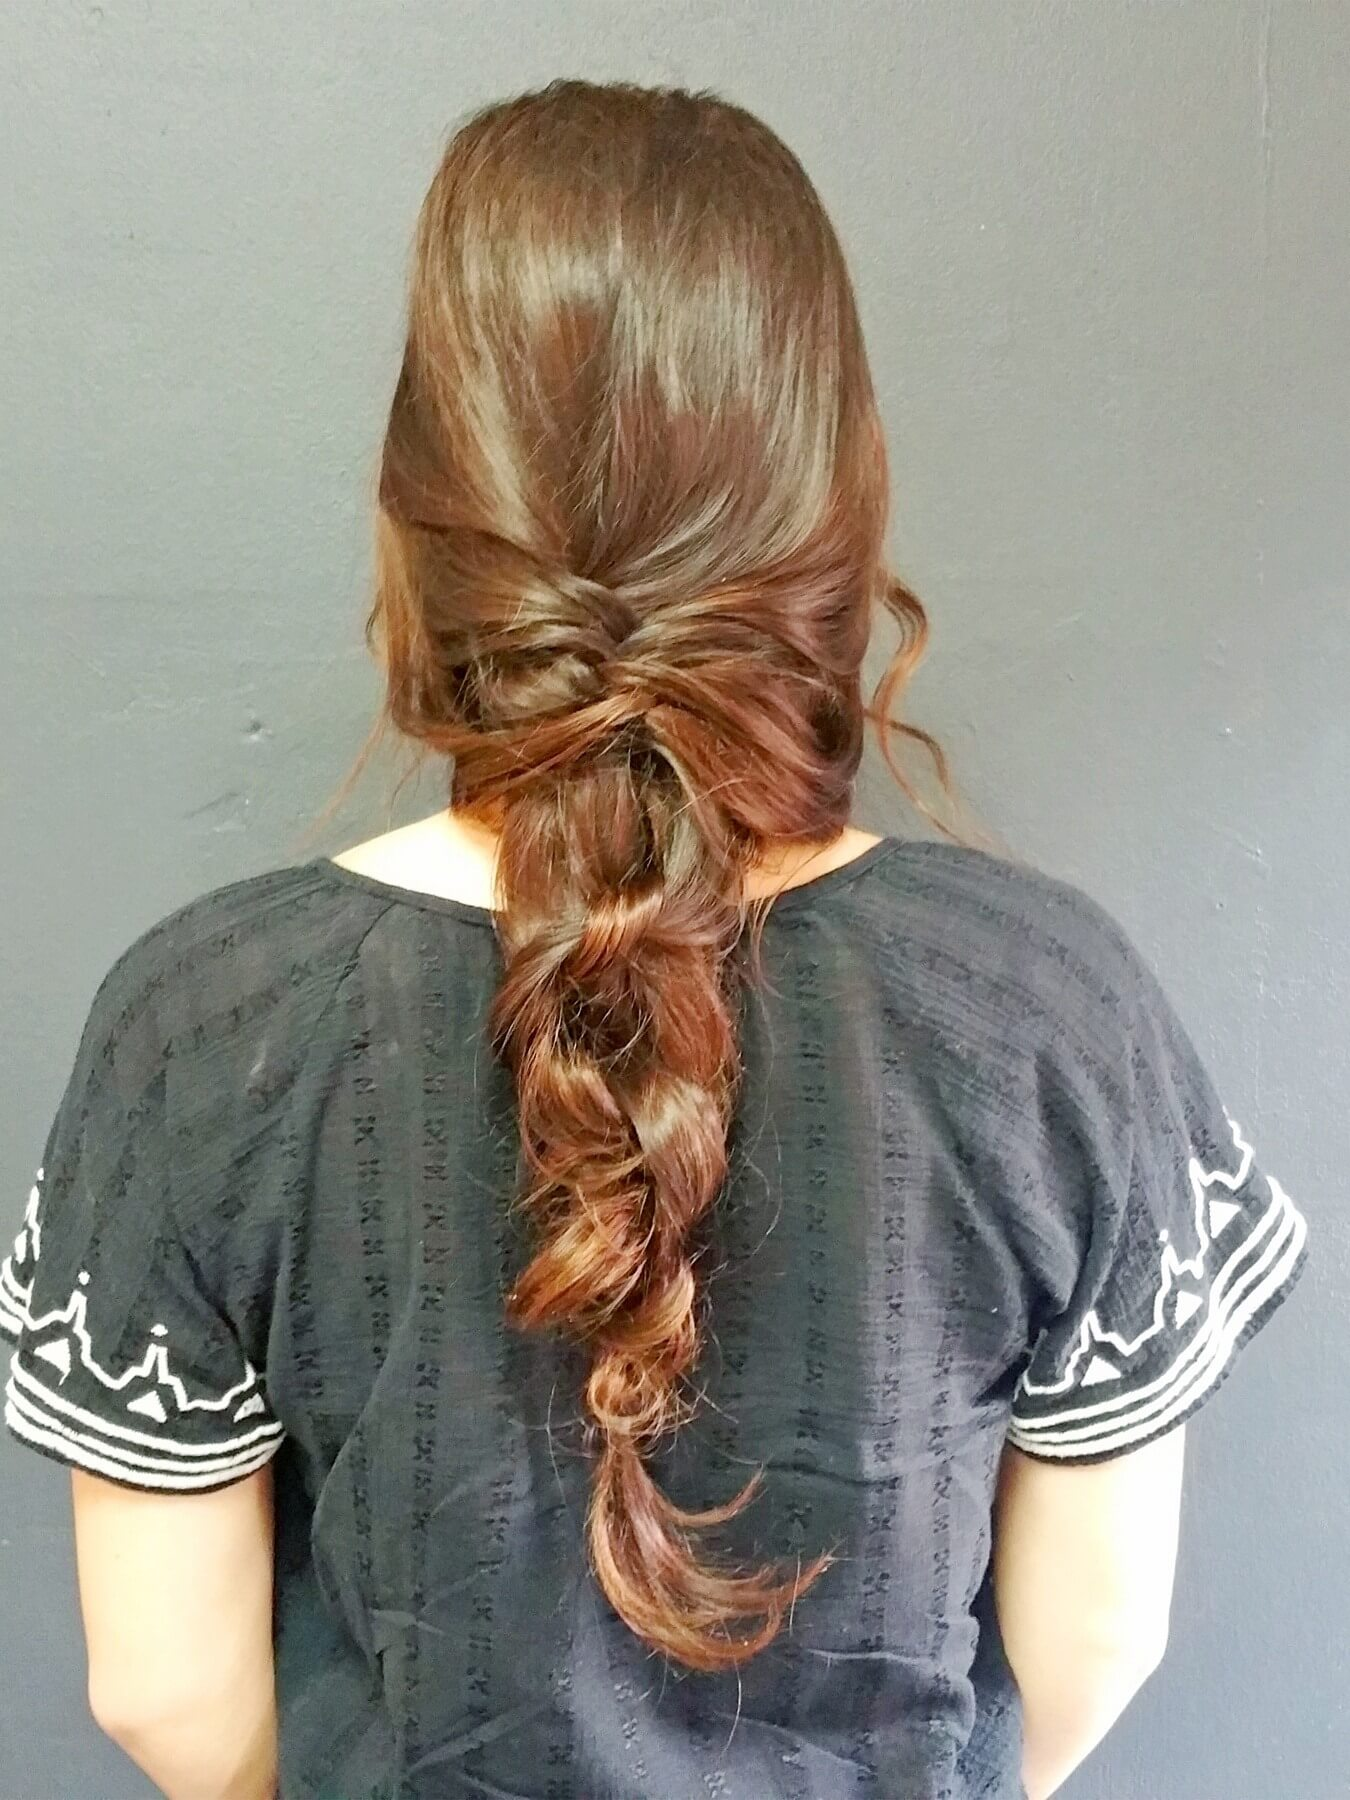 This loose, lovely ropey tail includes a fishtail braid and plain ole knots for an elegant, classical look.